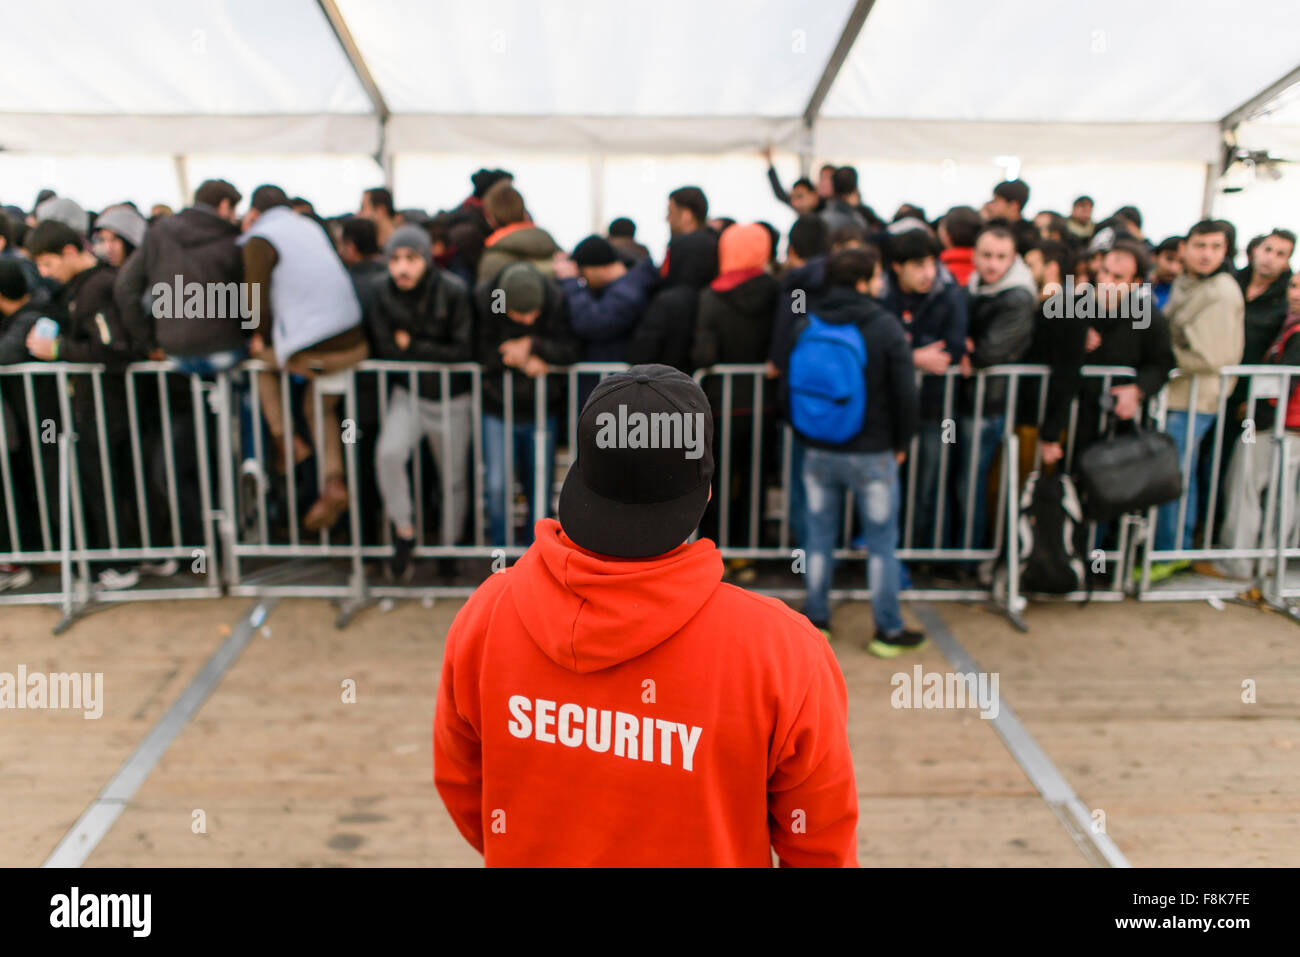 berlin-germany-10th-dec-2015-security-st